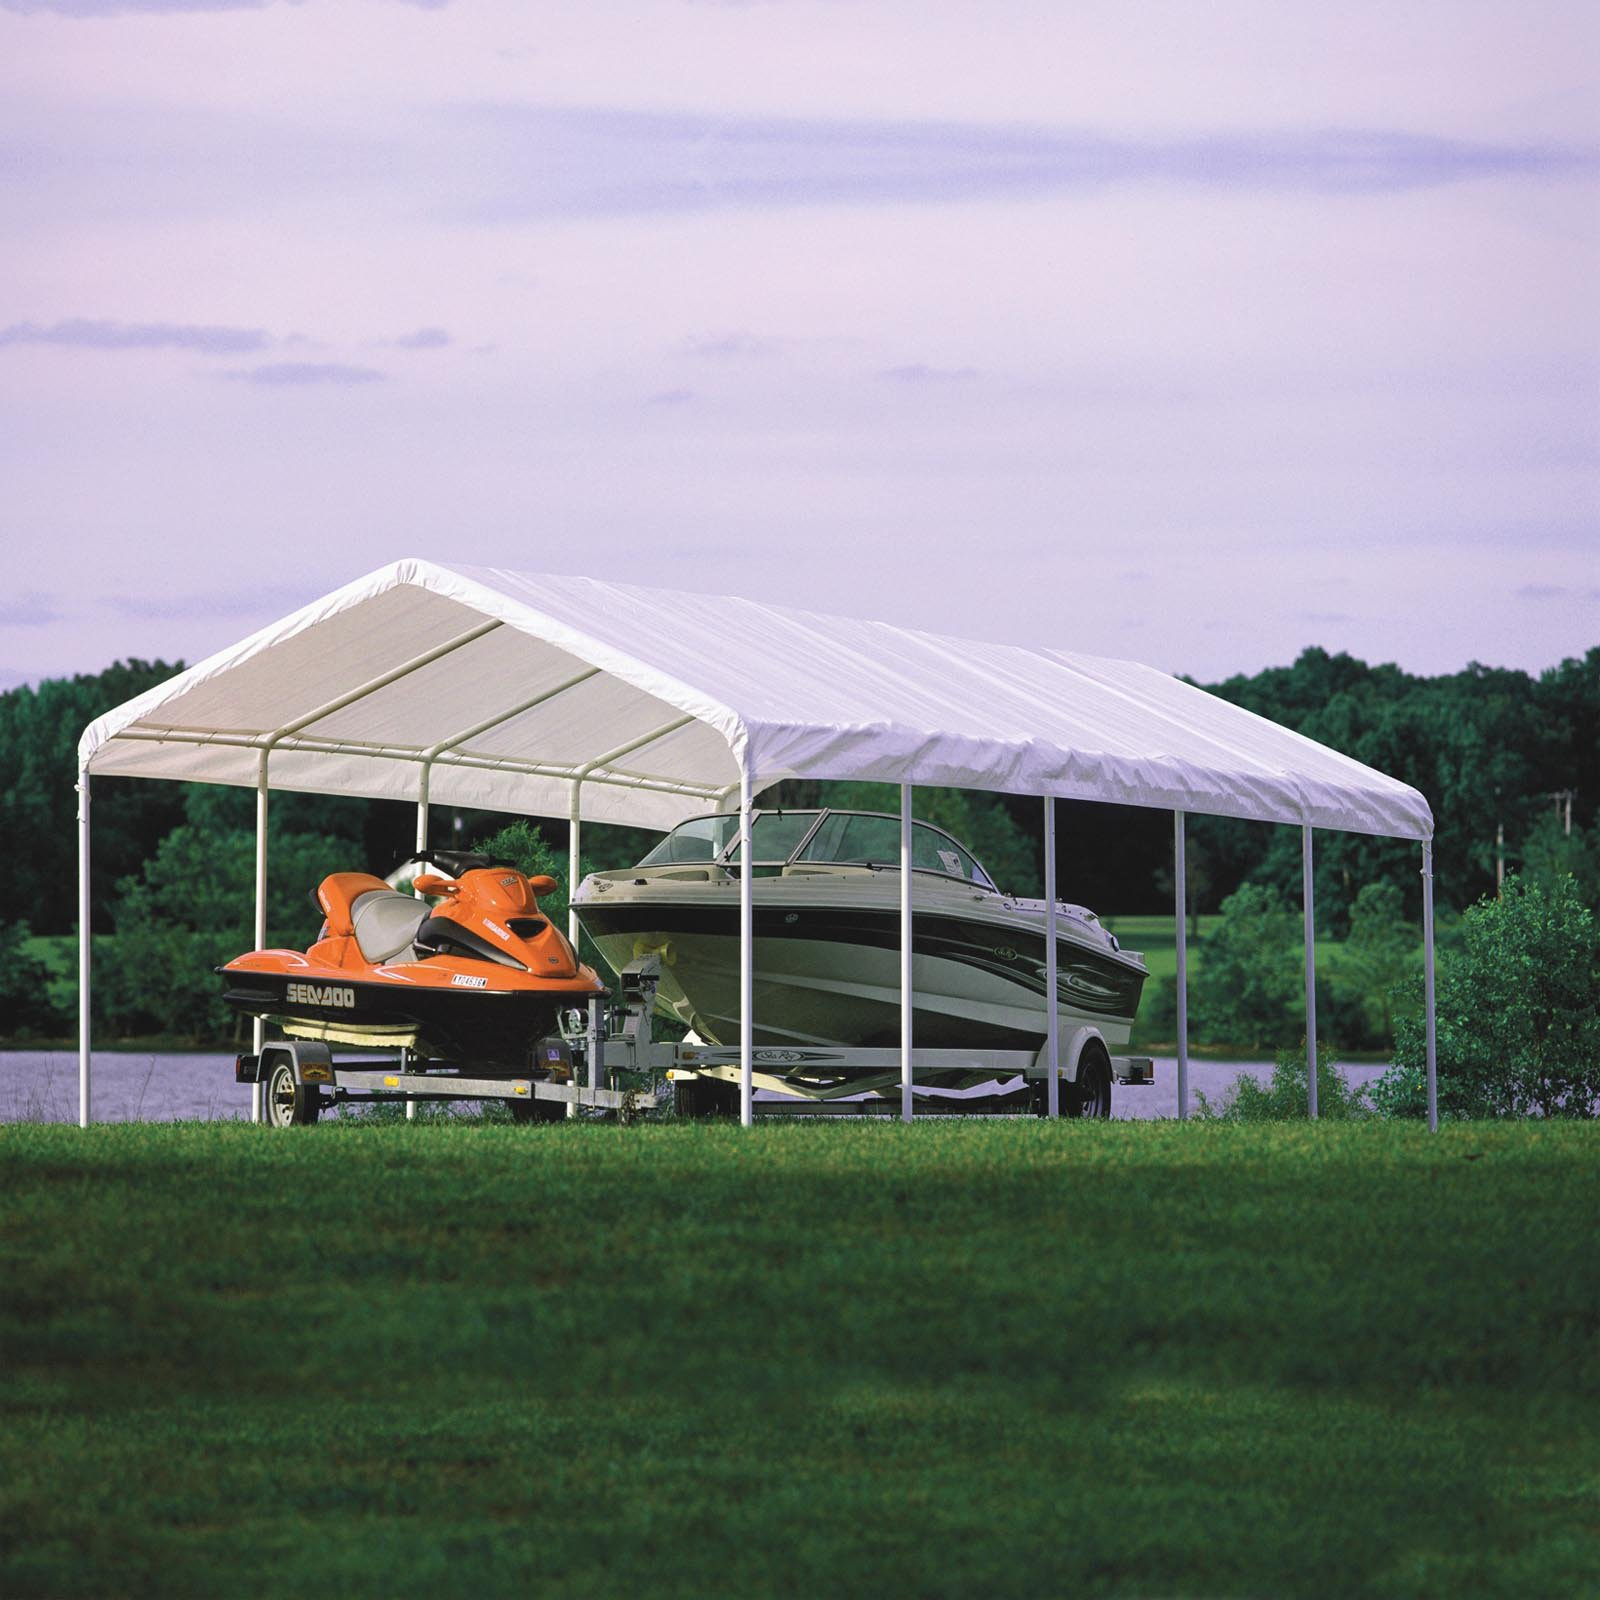 Shelterlogic Super Max 12' x 30' 6-Rib Canopy White Cover